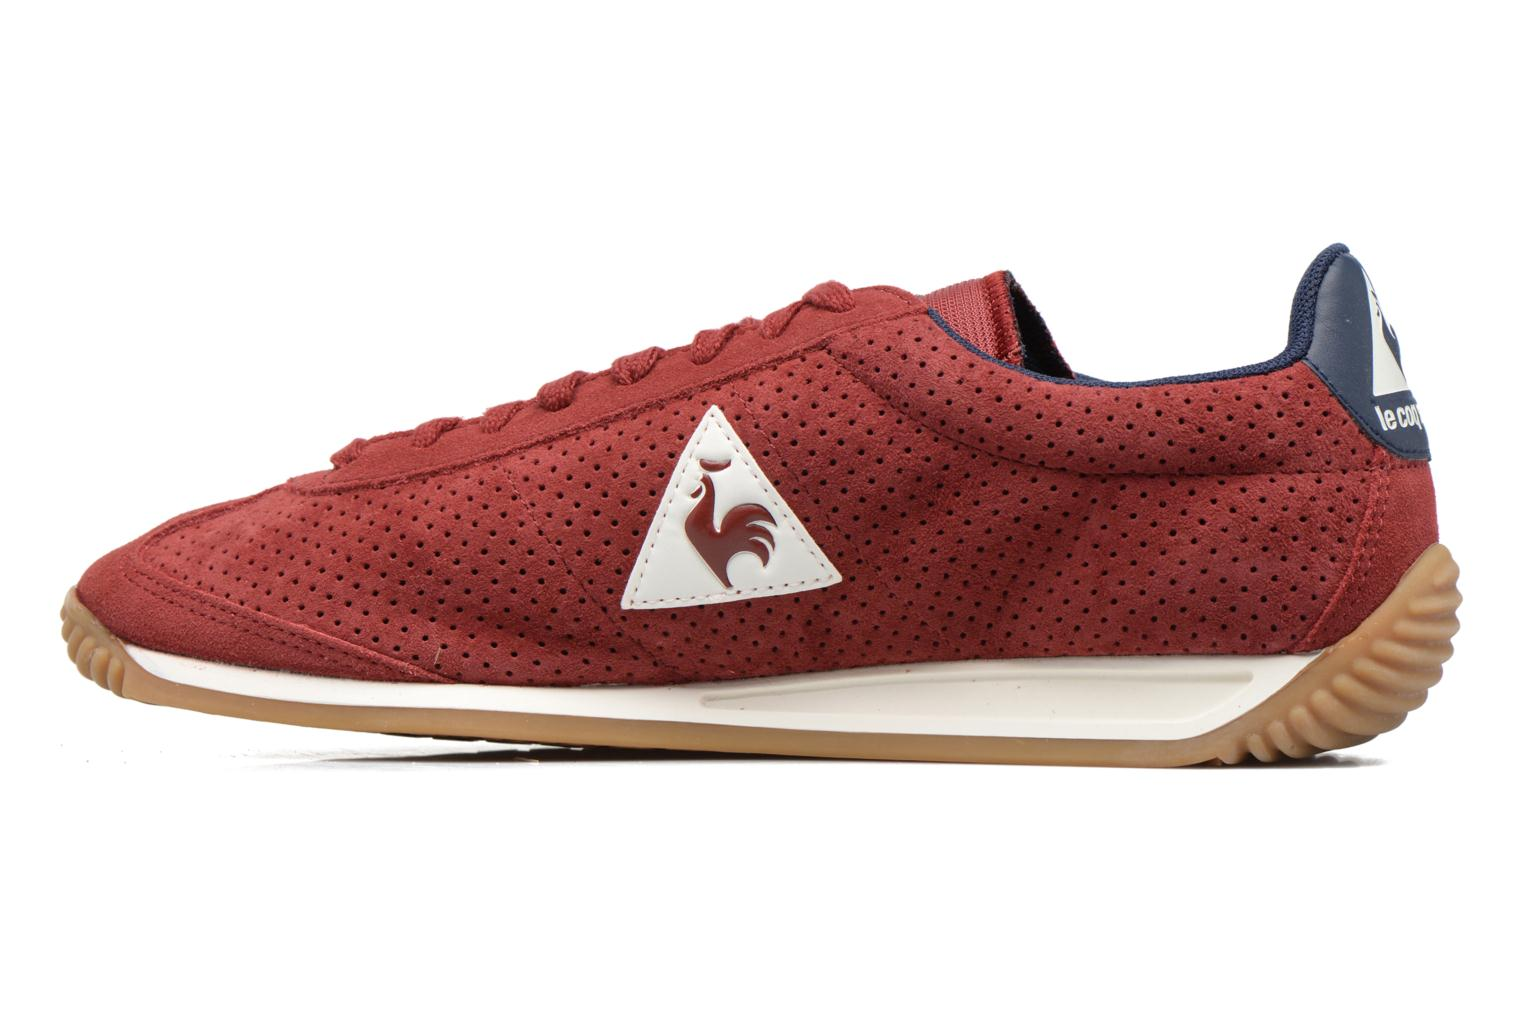 Baskets Le Coq Sportif Quartz Perforated Nubuck Rouge vue face